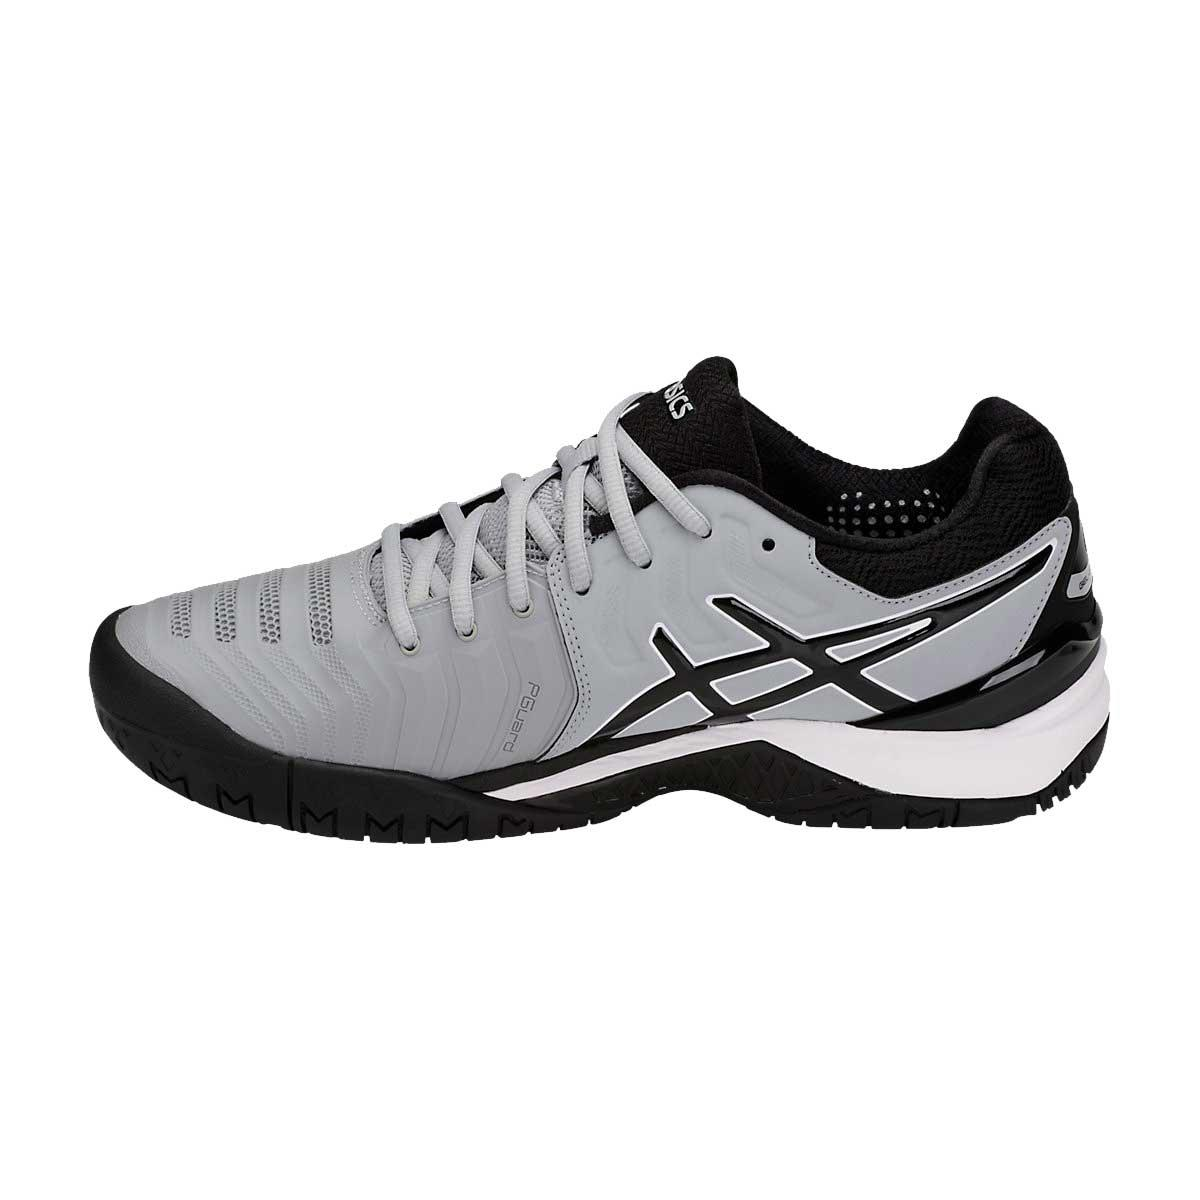 92d41839a9449 Tênis Asics Gel Resolution 7 Masculino